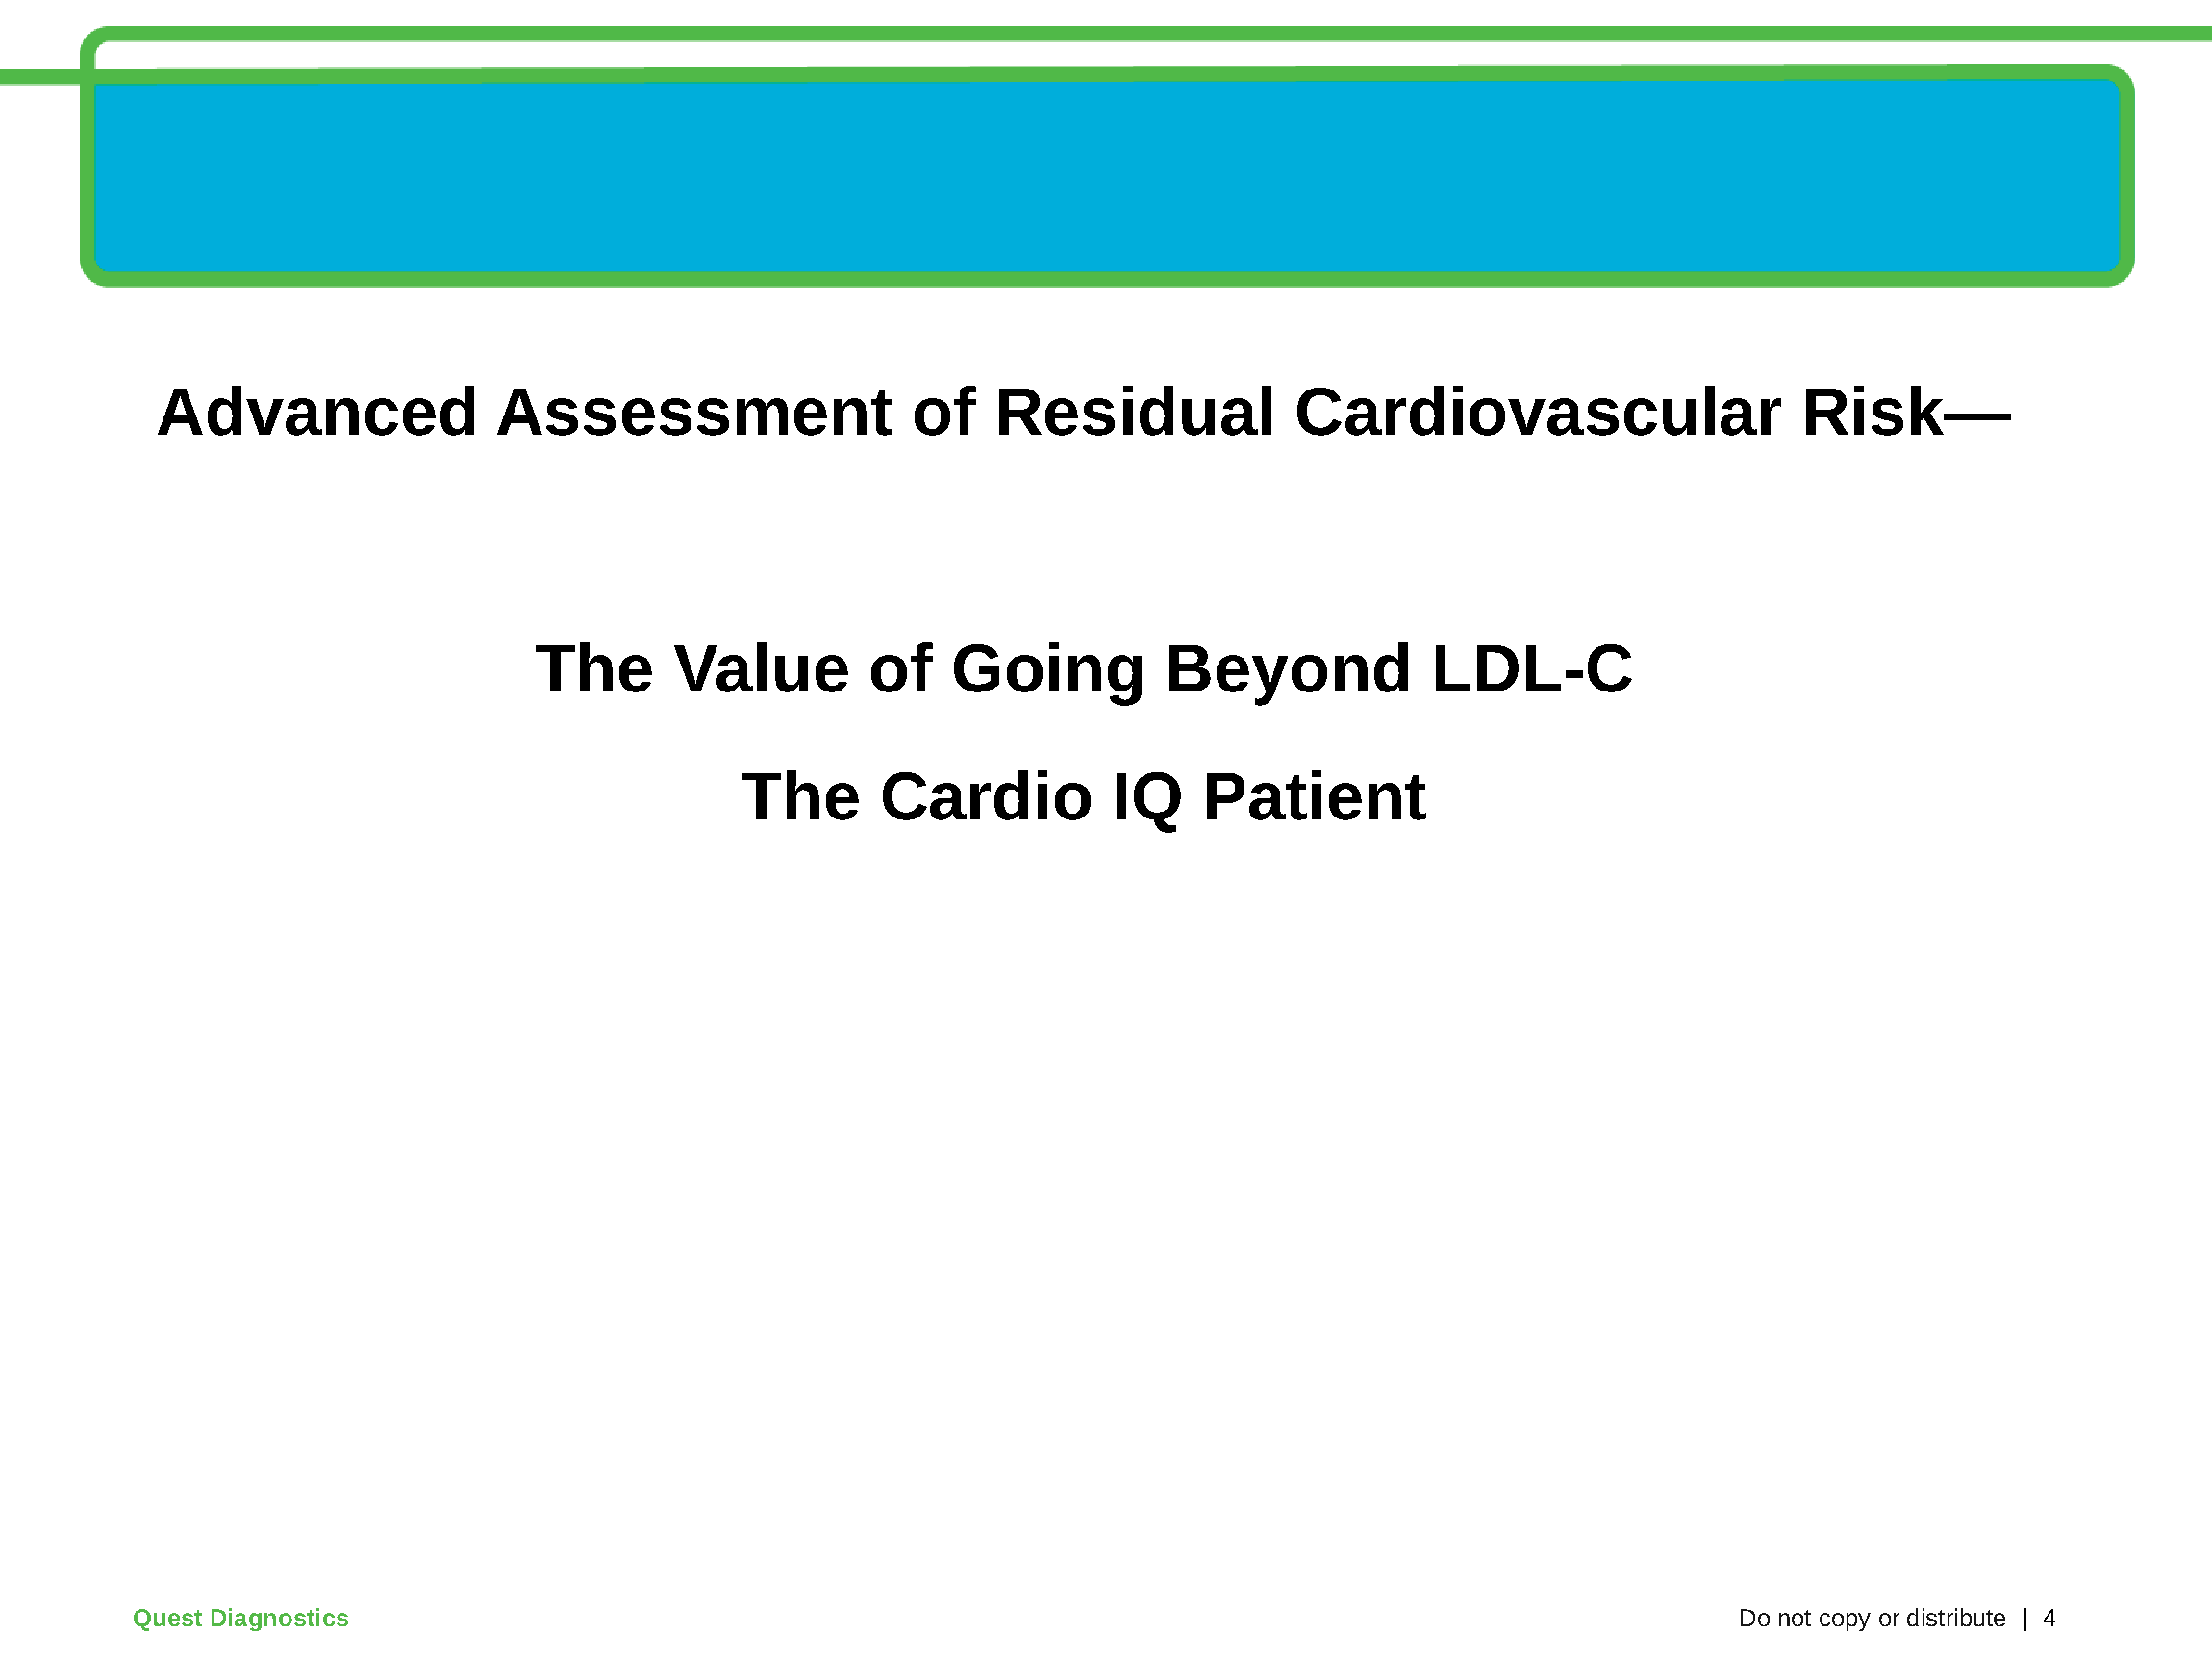 Cardio IQ In Primary Care: Uncovering the Hidden, High Risk